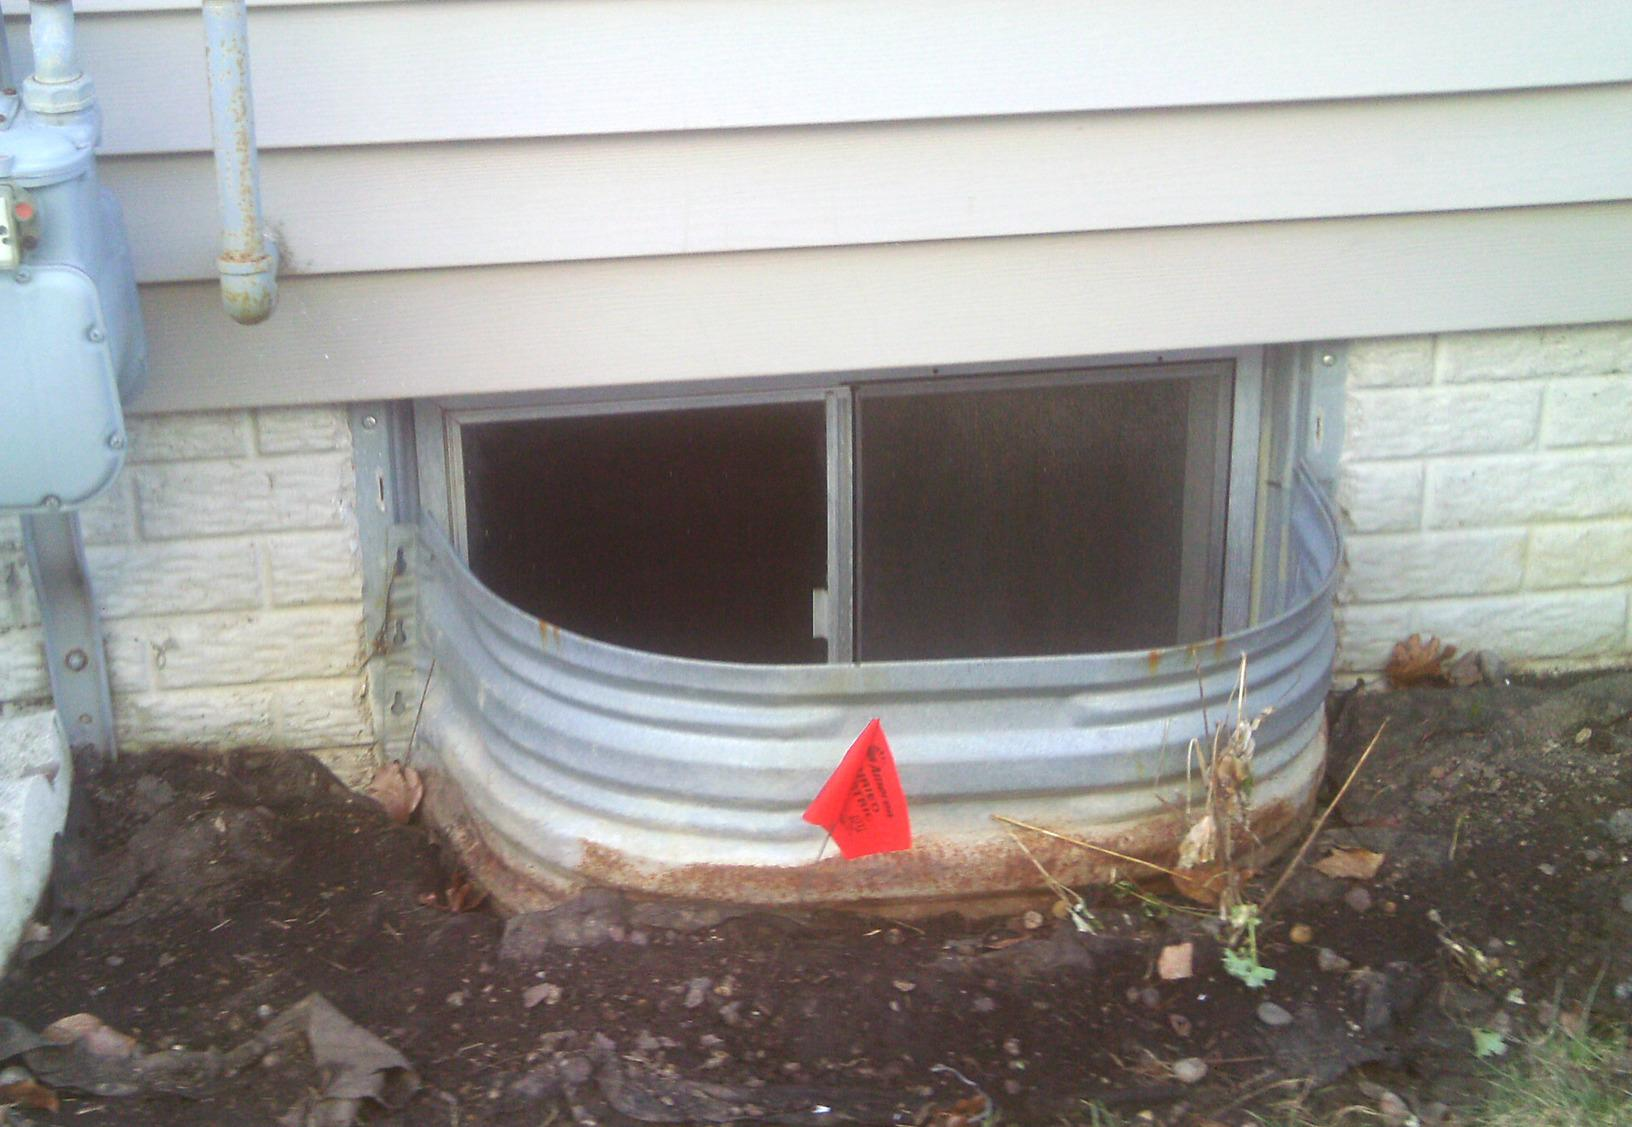 The window system covering this egress did little to keep the elements out and was an eye sore.